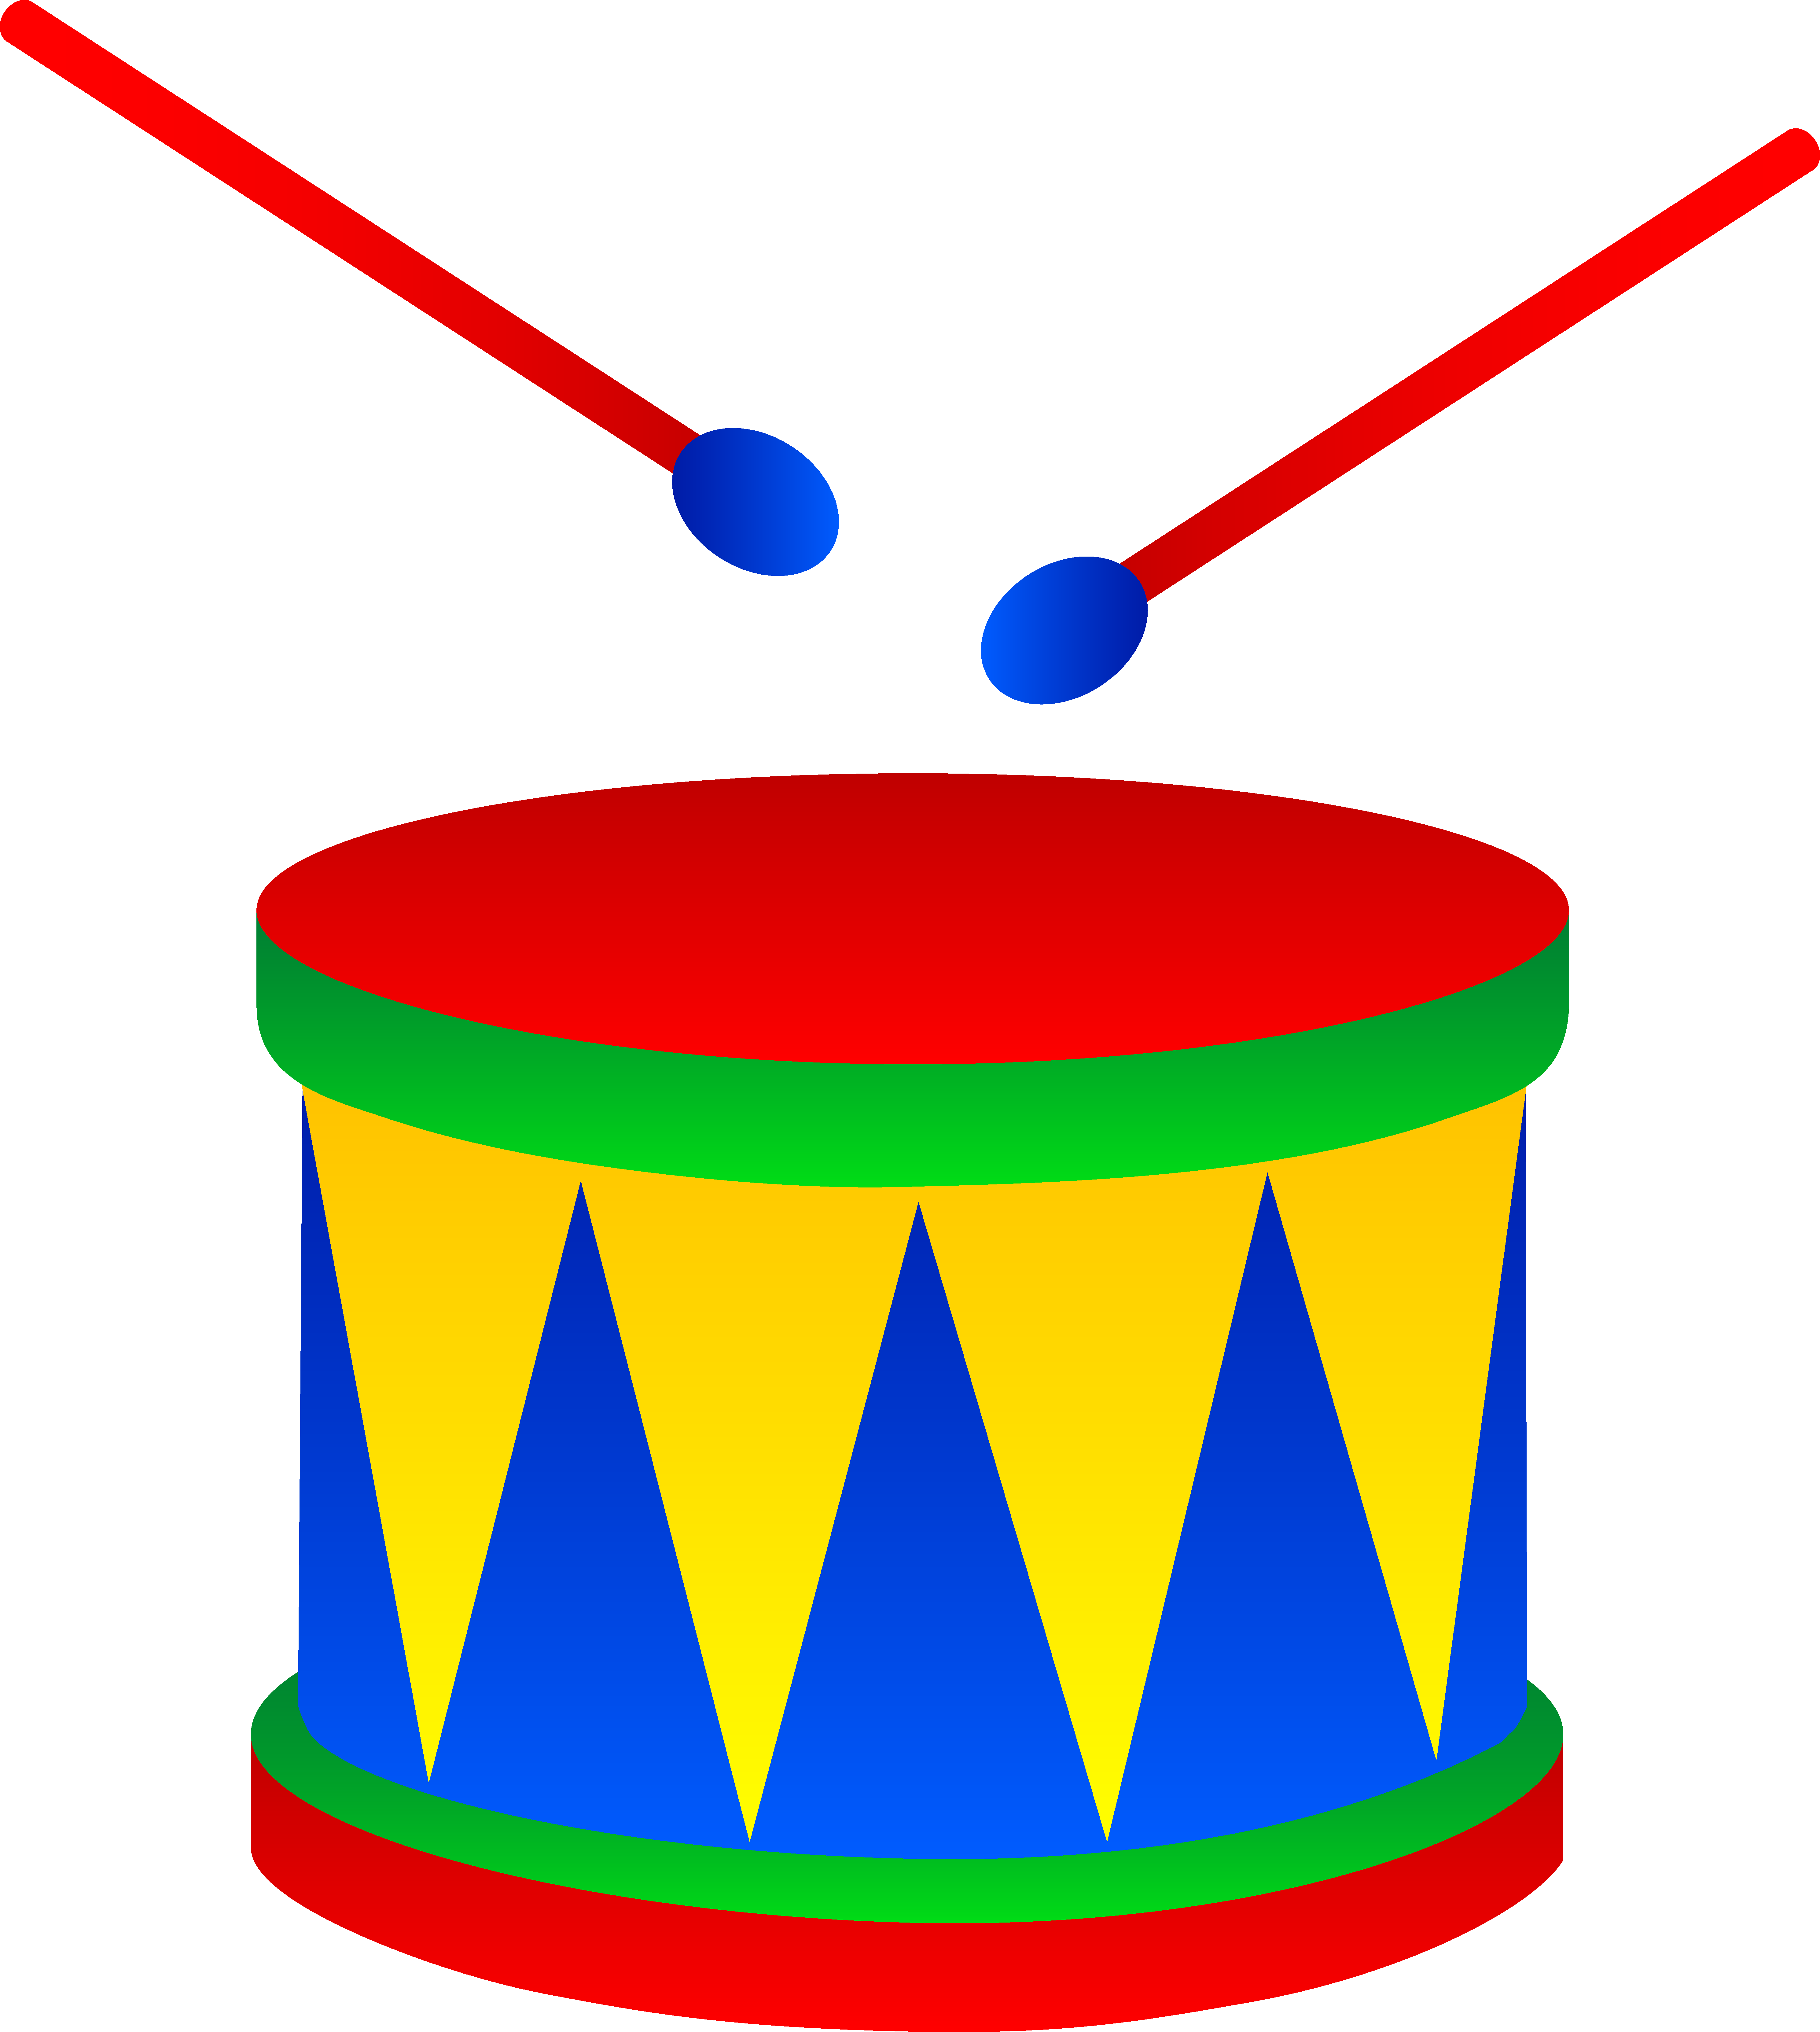 drum clipart music thing